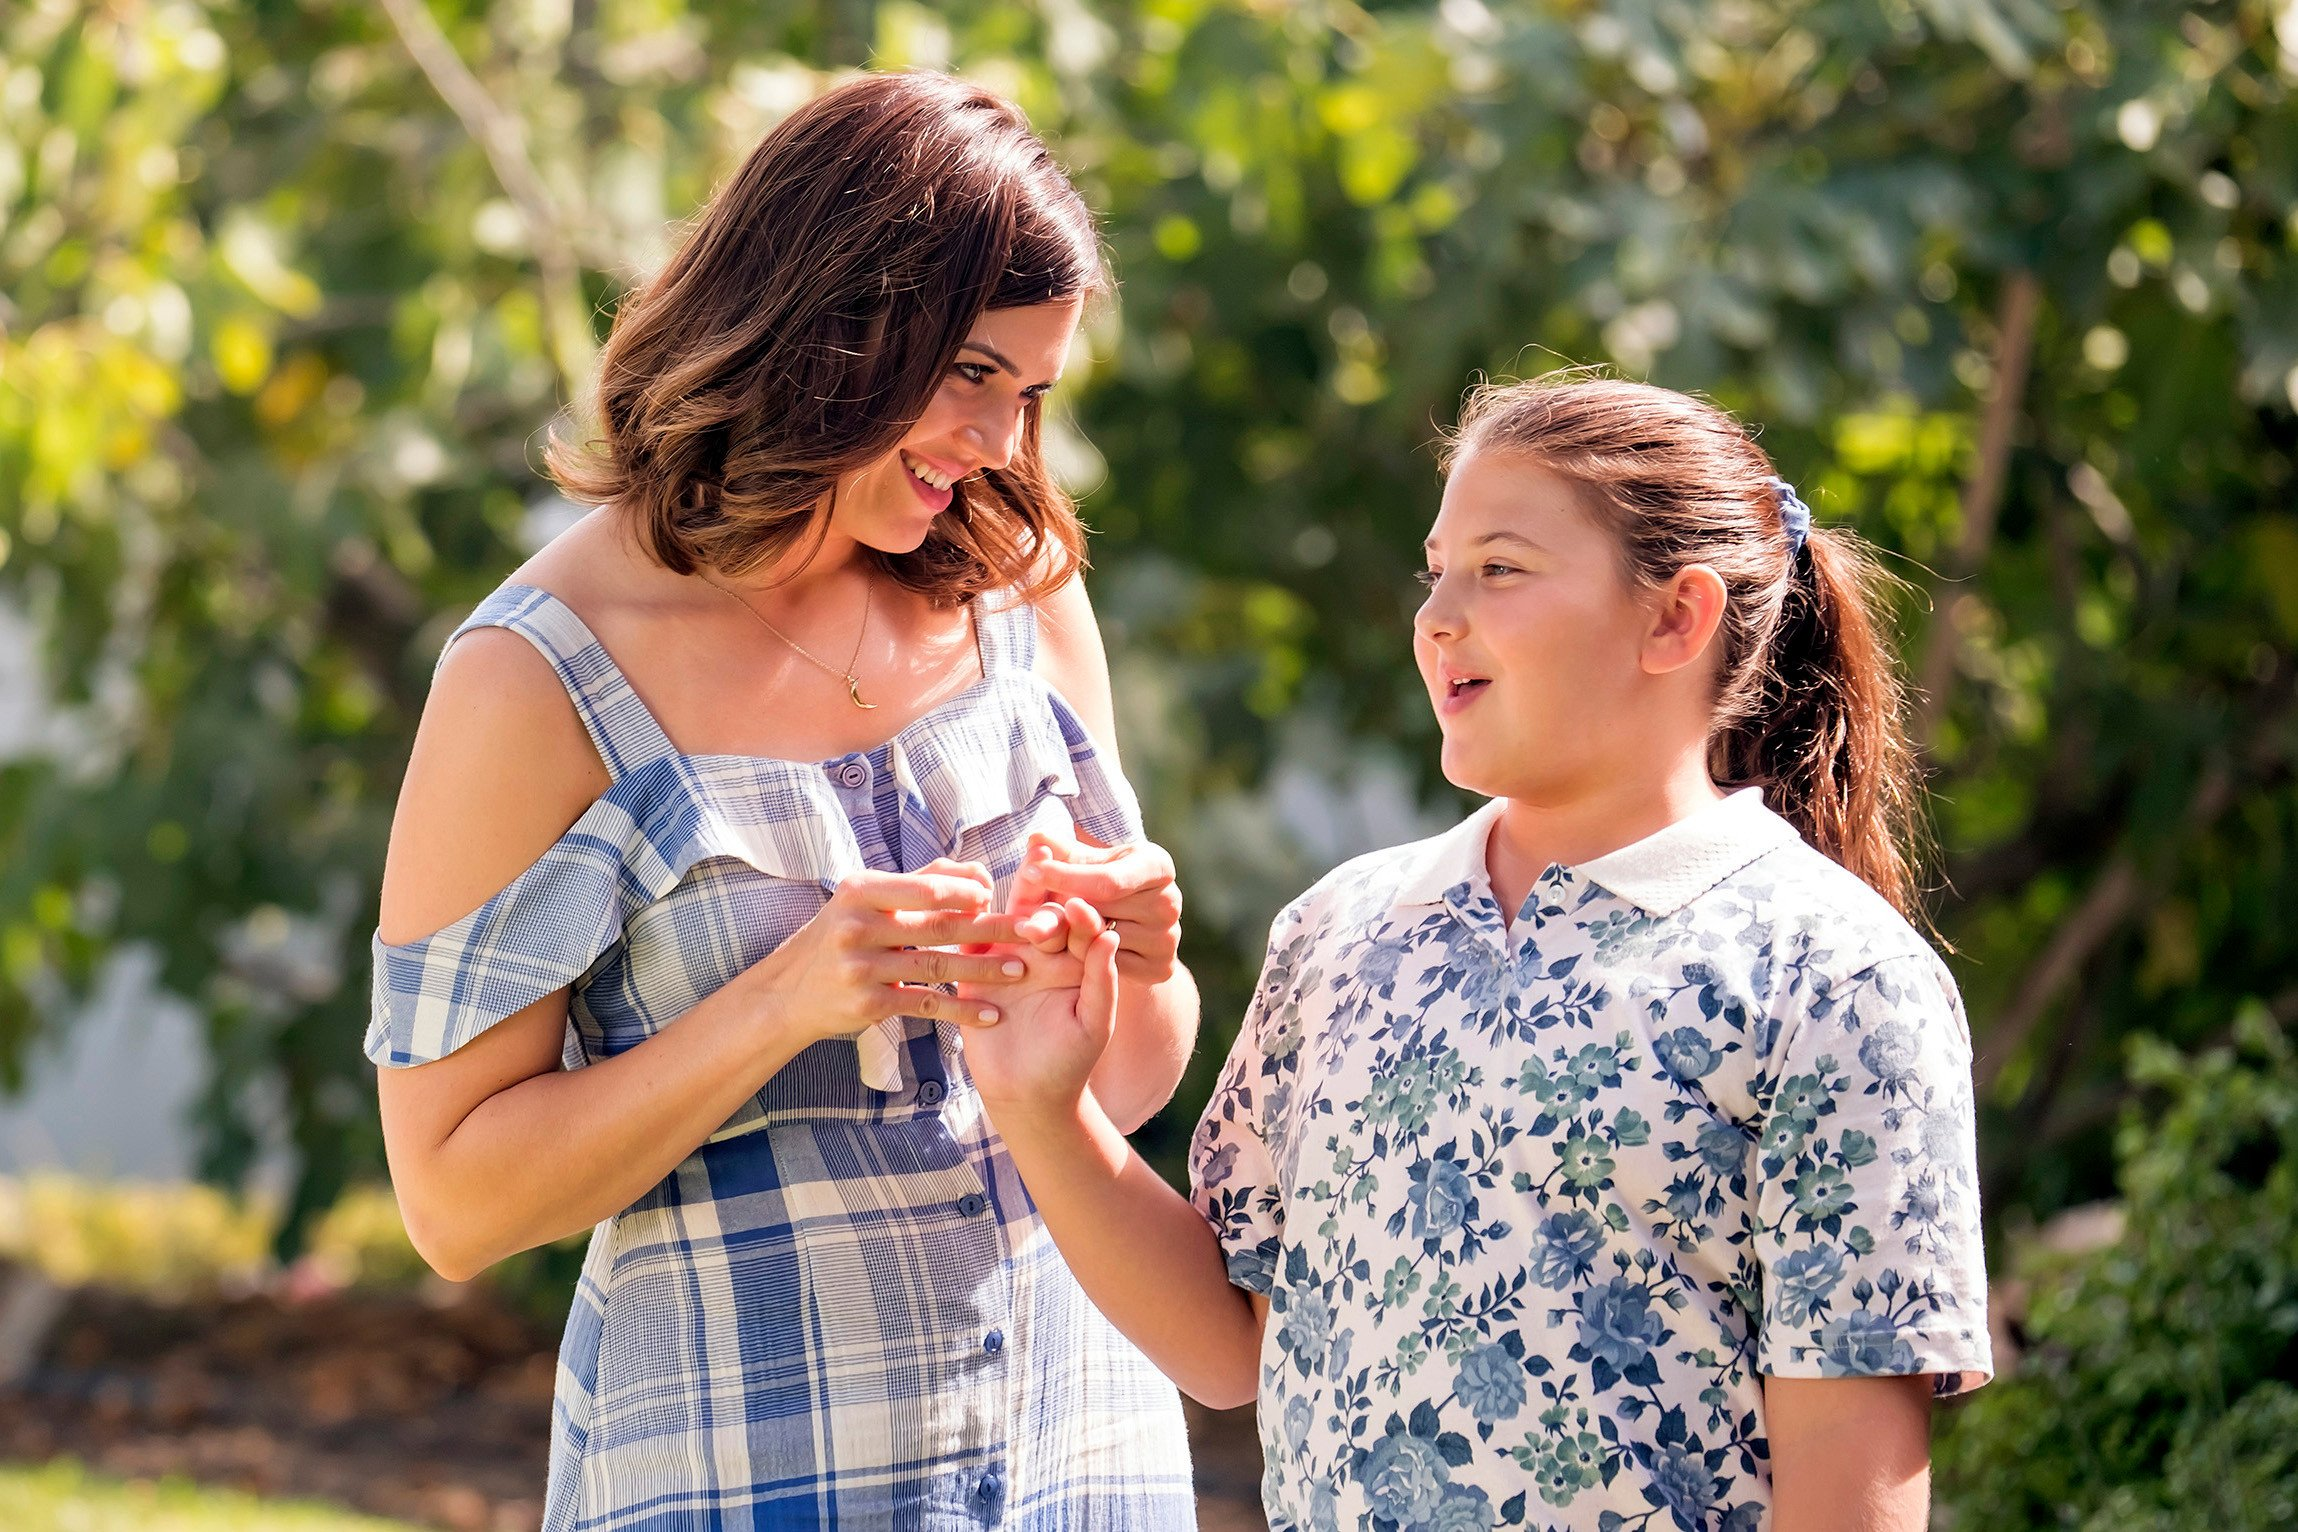 'This Is Us' is prepping Mandy Moore for motherhood